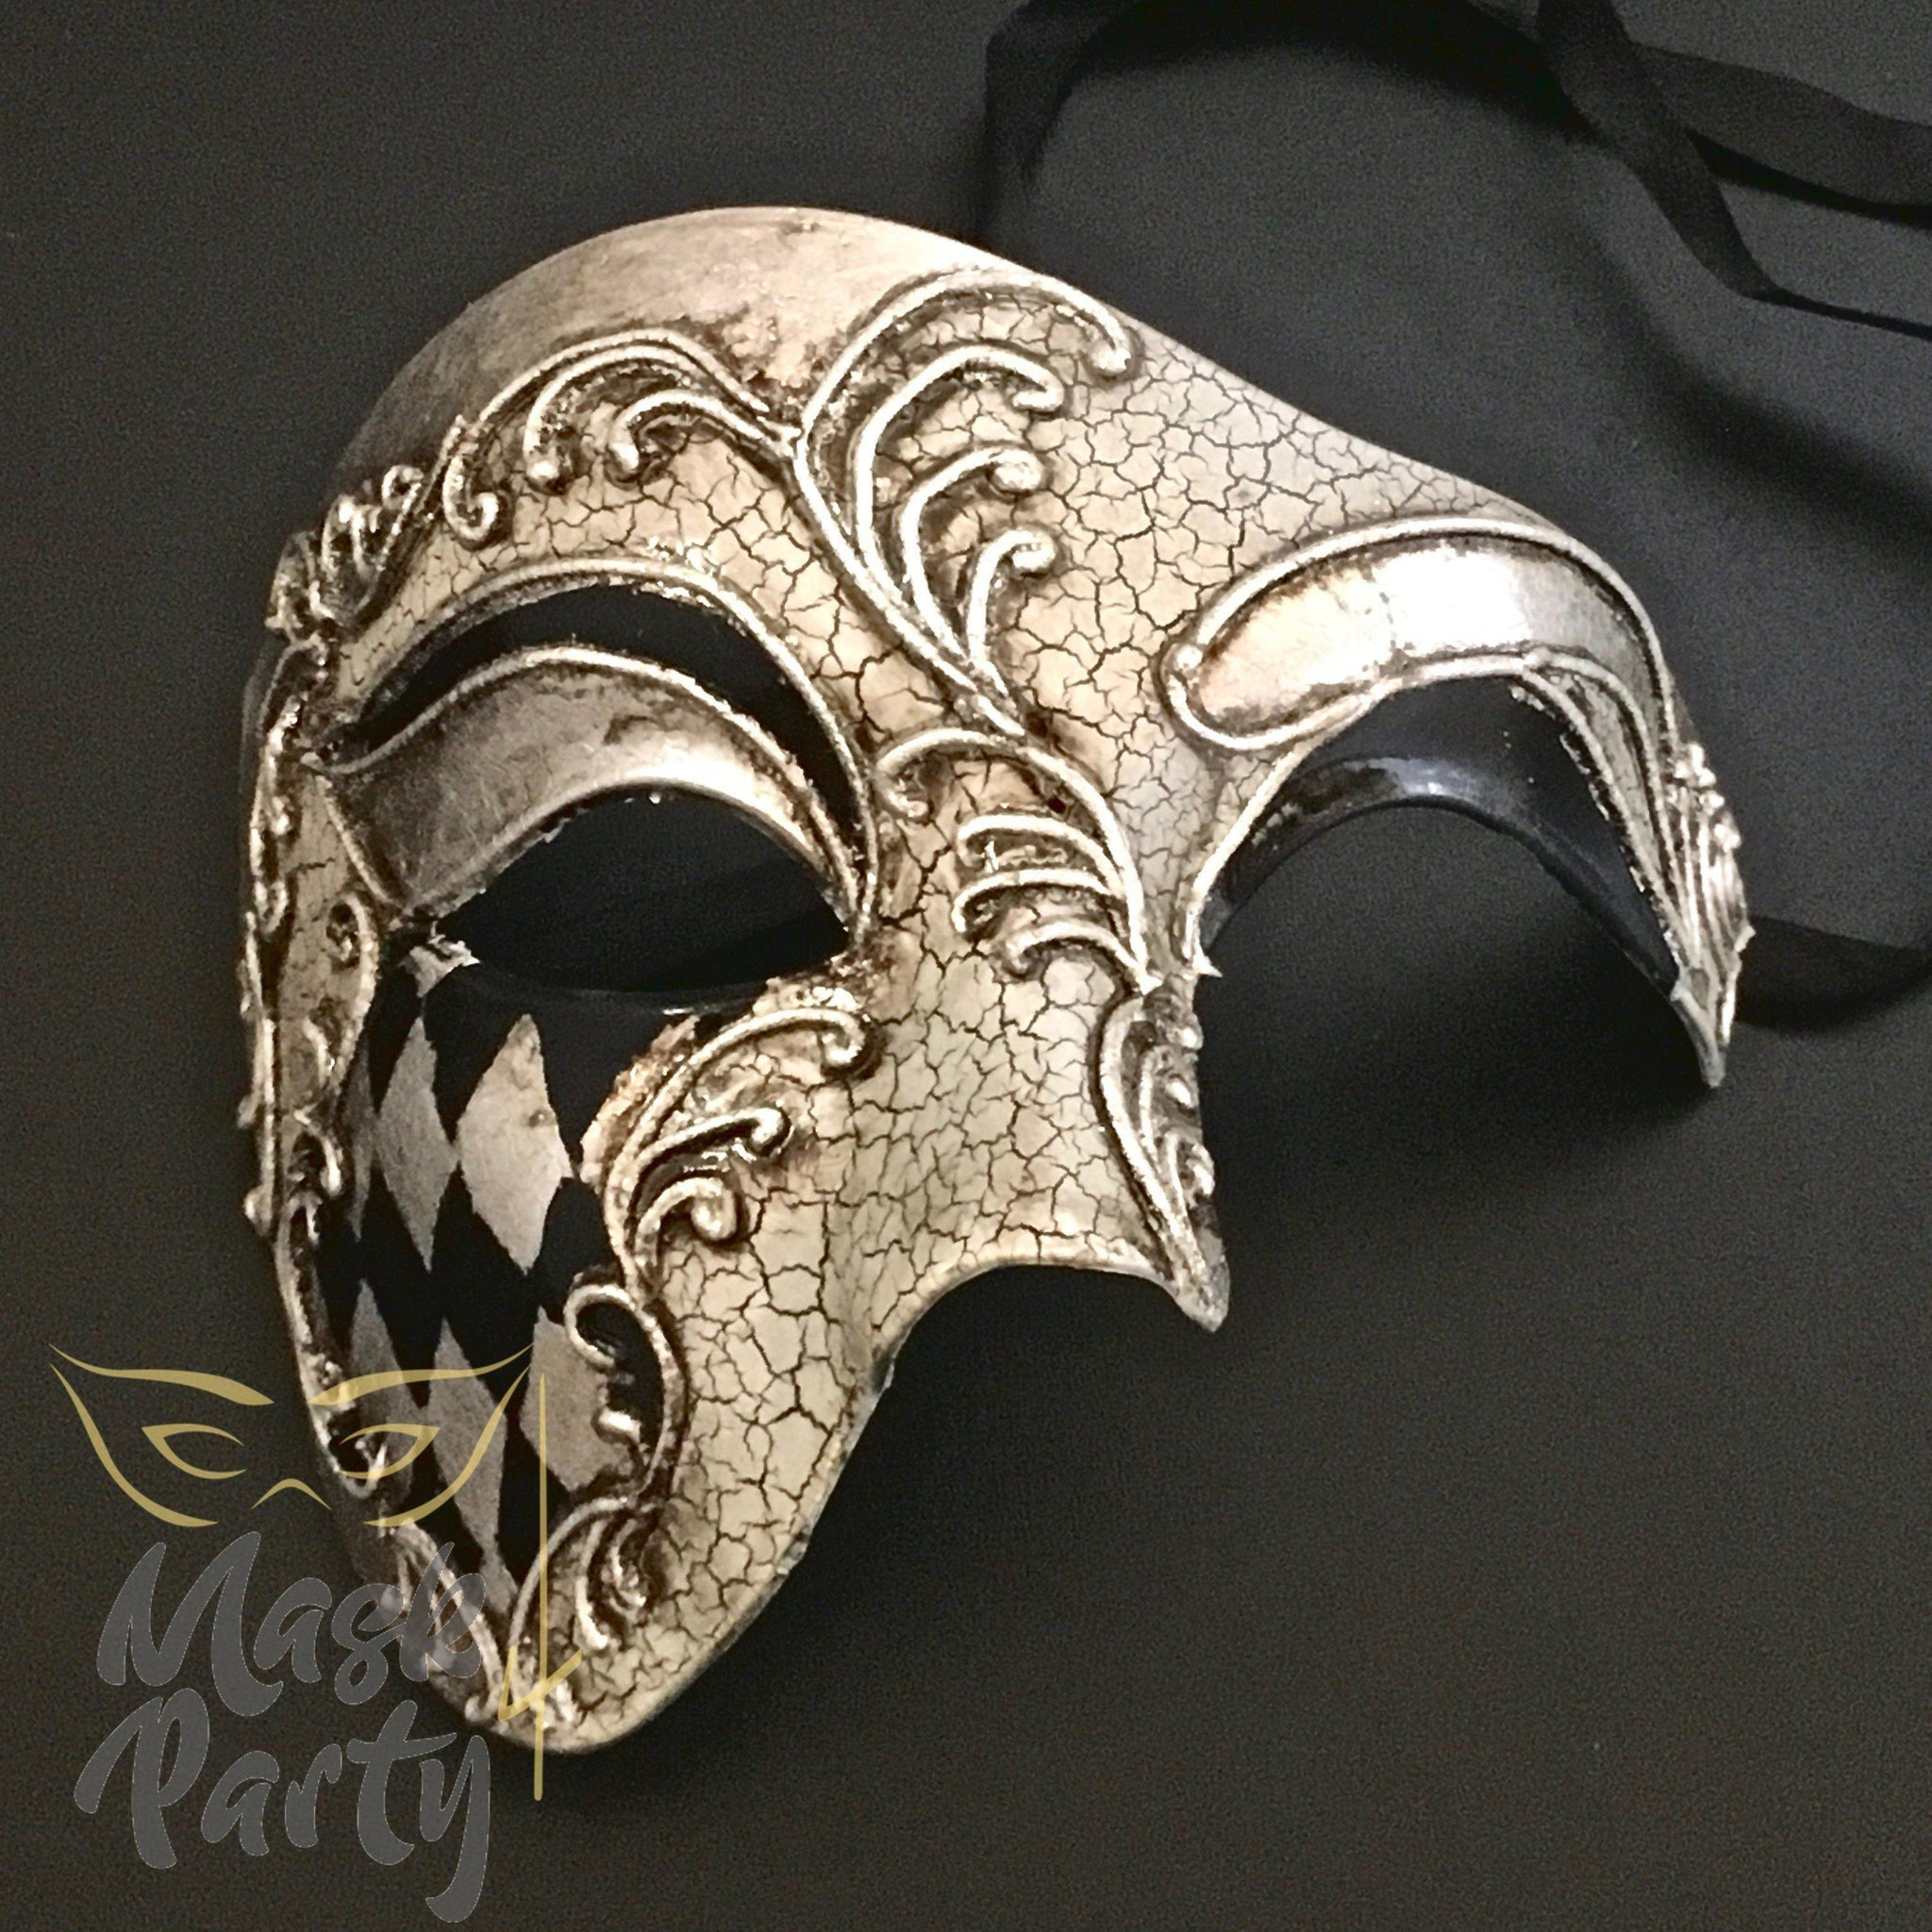 Masquerade Mask - Phantom Of The Opera - Black/Silver - Mask4Party